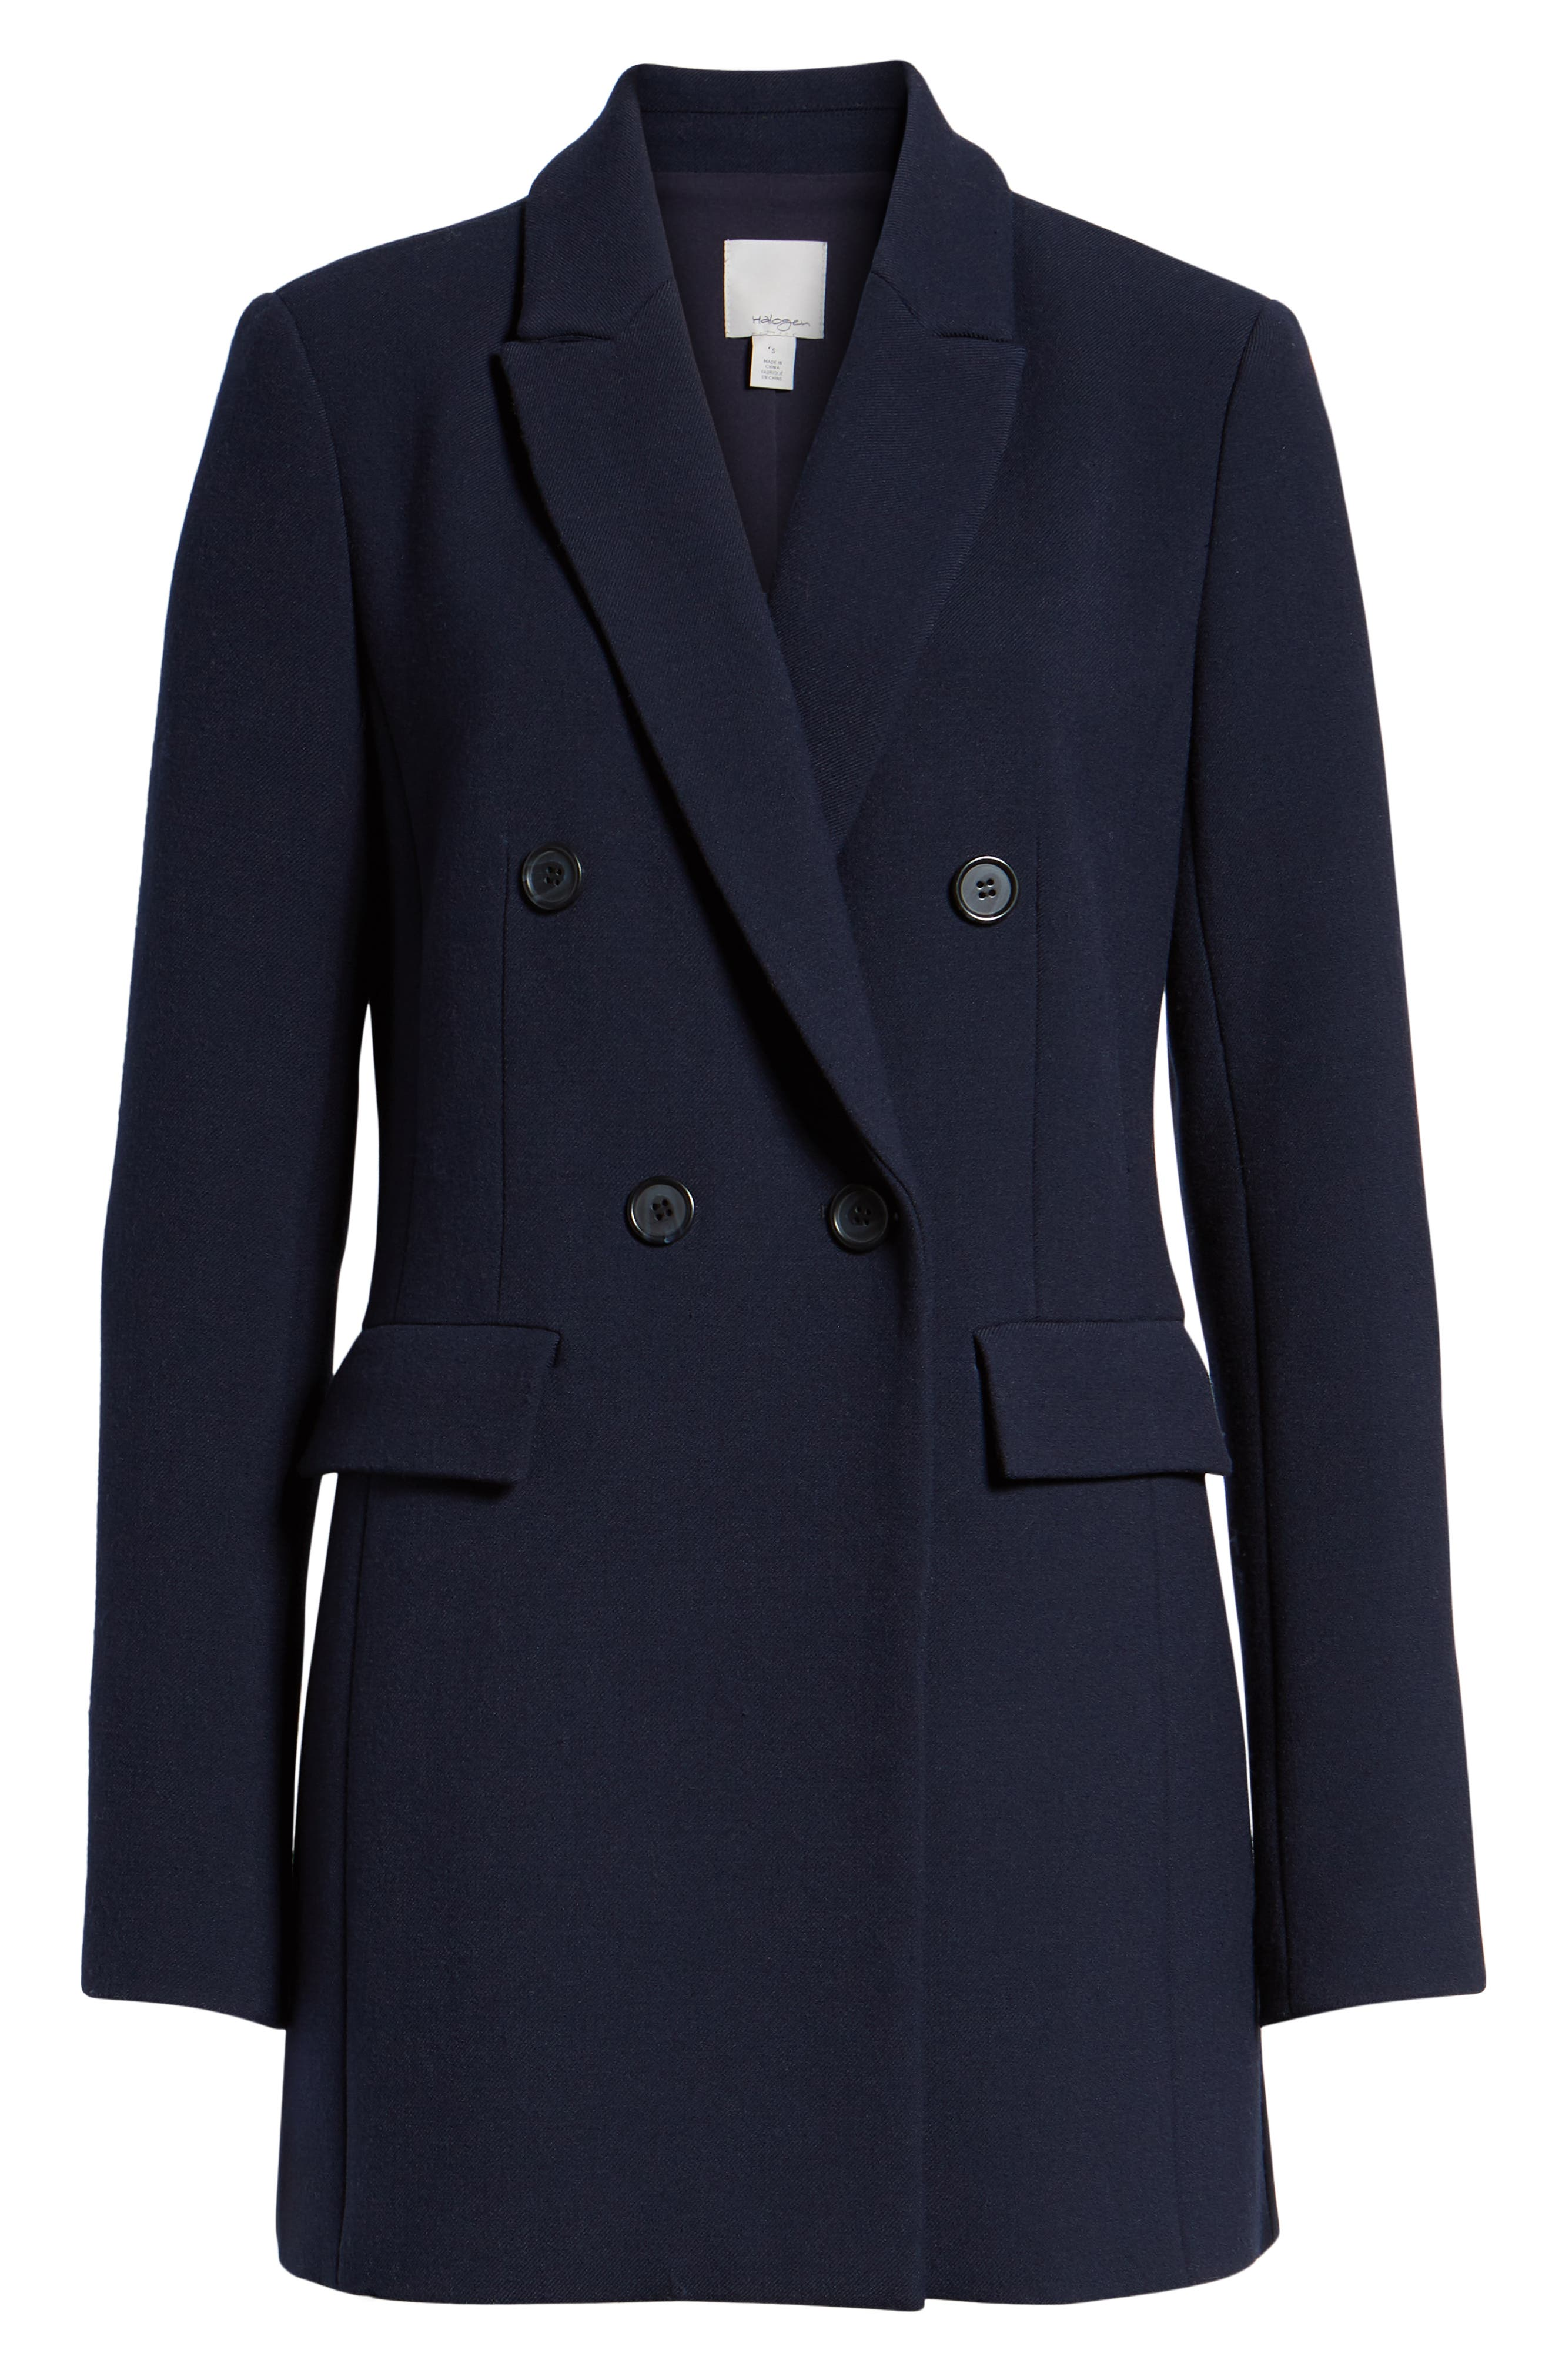 x Atlantic-Pacific Menswear Double Breasted Blazer,                             Alternate thumbnail 7, color,                             NAVY